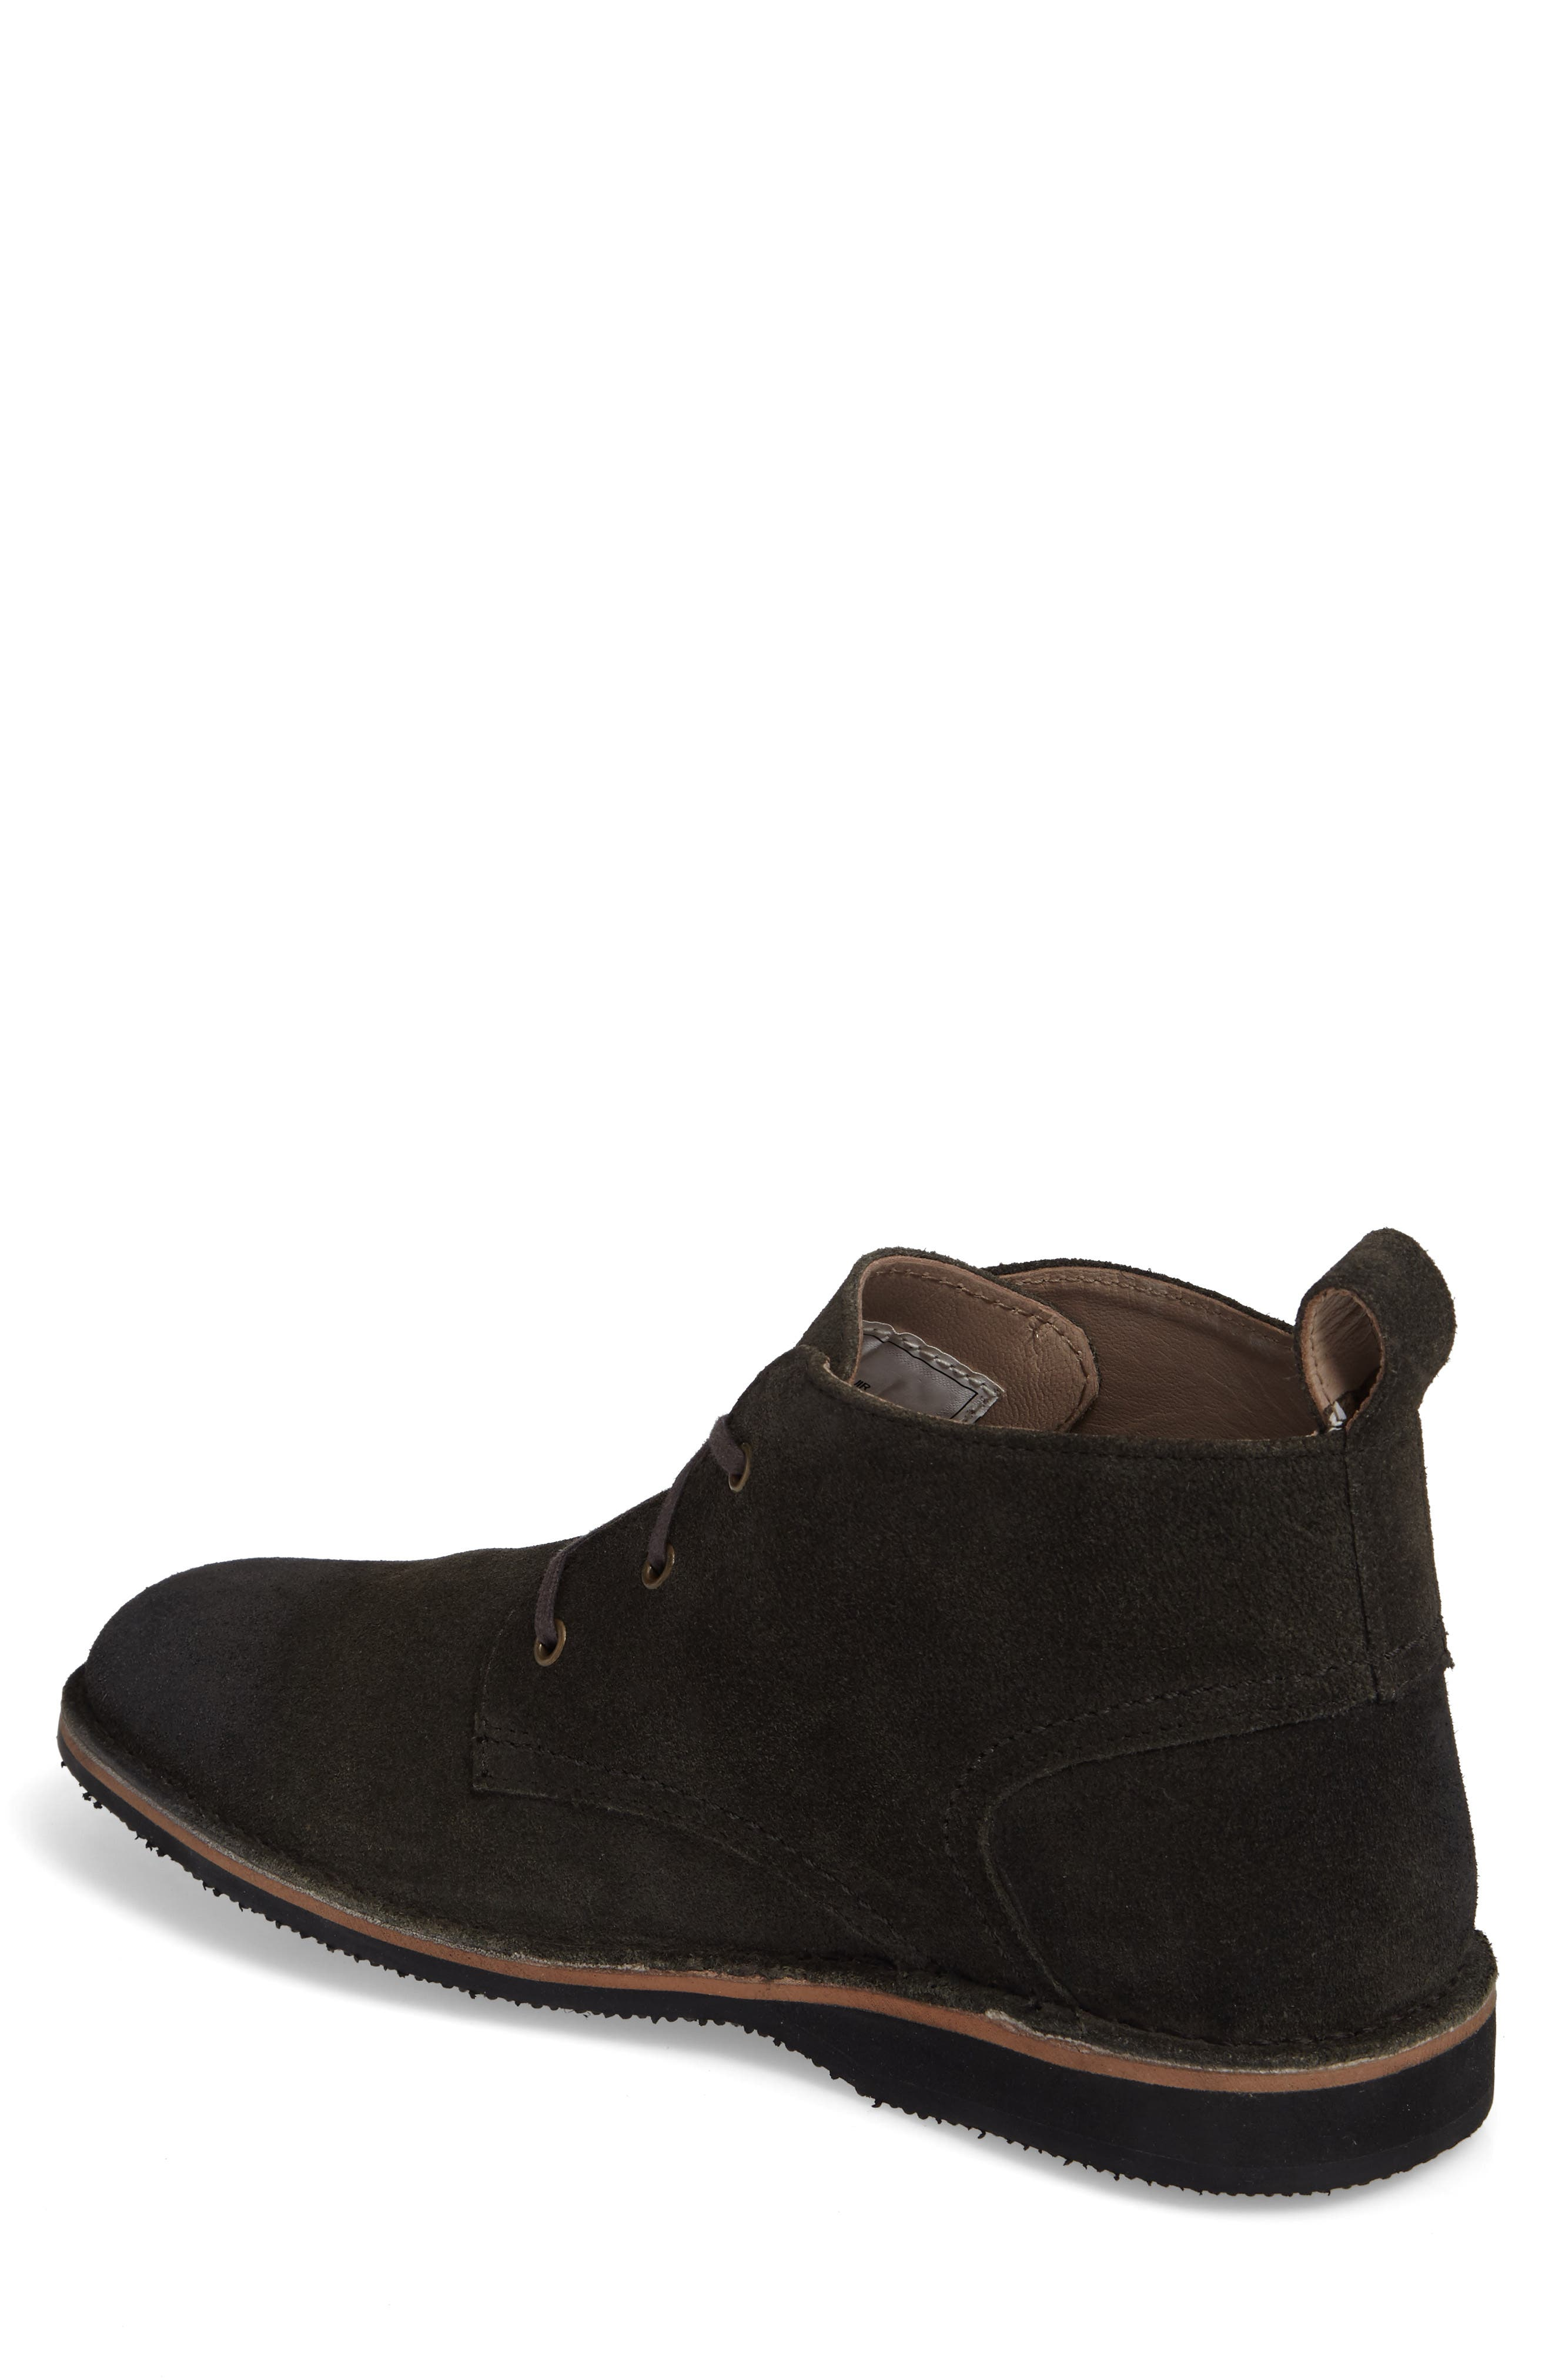 Dorchester Chukka Boot,                             Alternate thumbnail 2, color,                             OXIDE/ DEEP NATURAL SUEDE